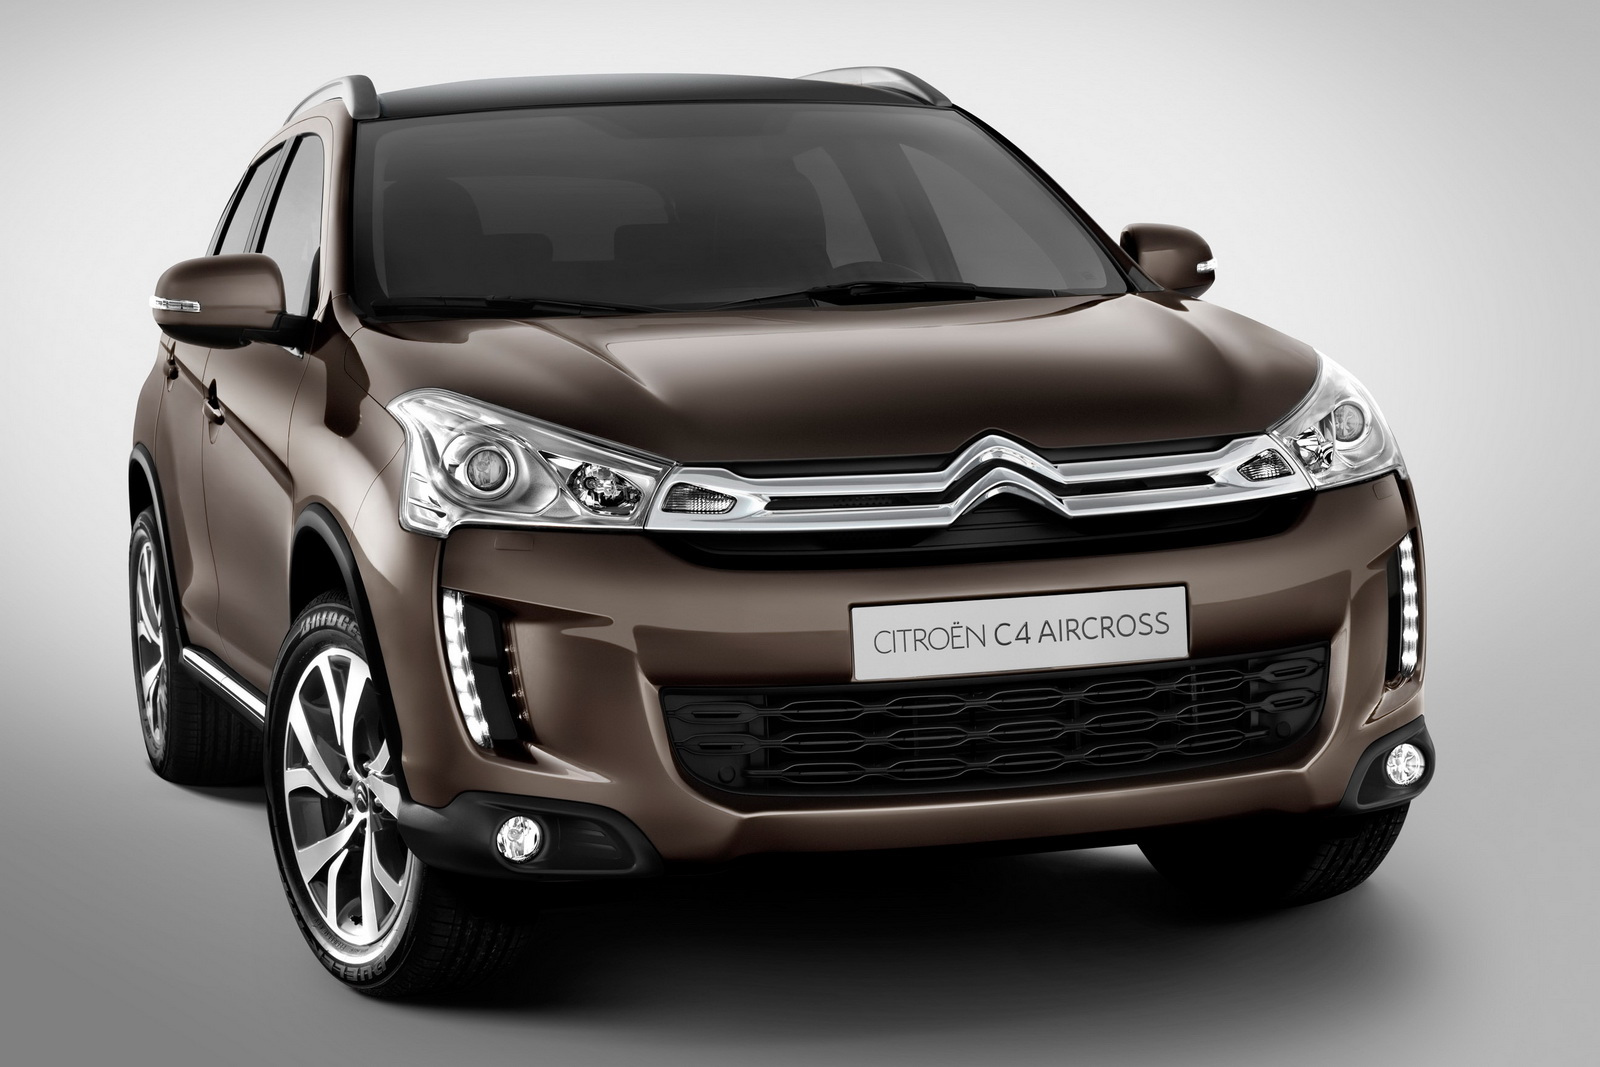 new 2012 citroen c4 aircross psa s takes on the mitsubishi asx with its new version. Black Bedroom Furniture Sets. Home Design Ideas